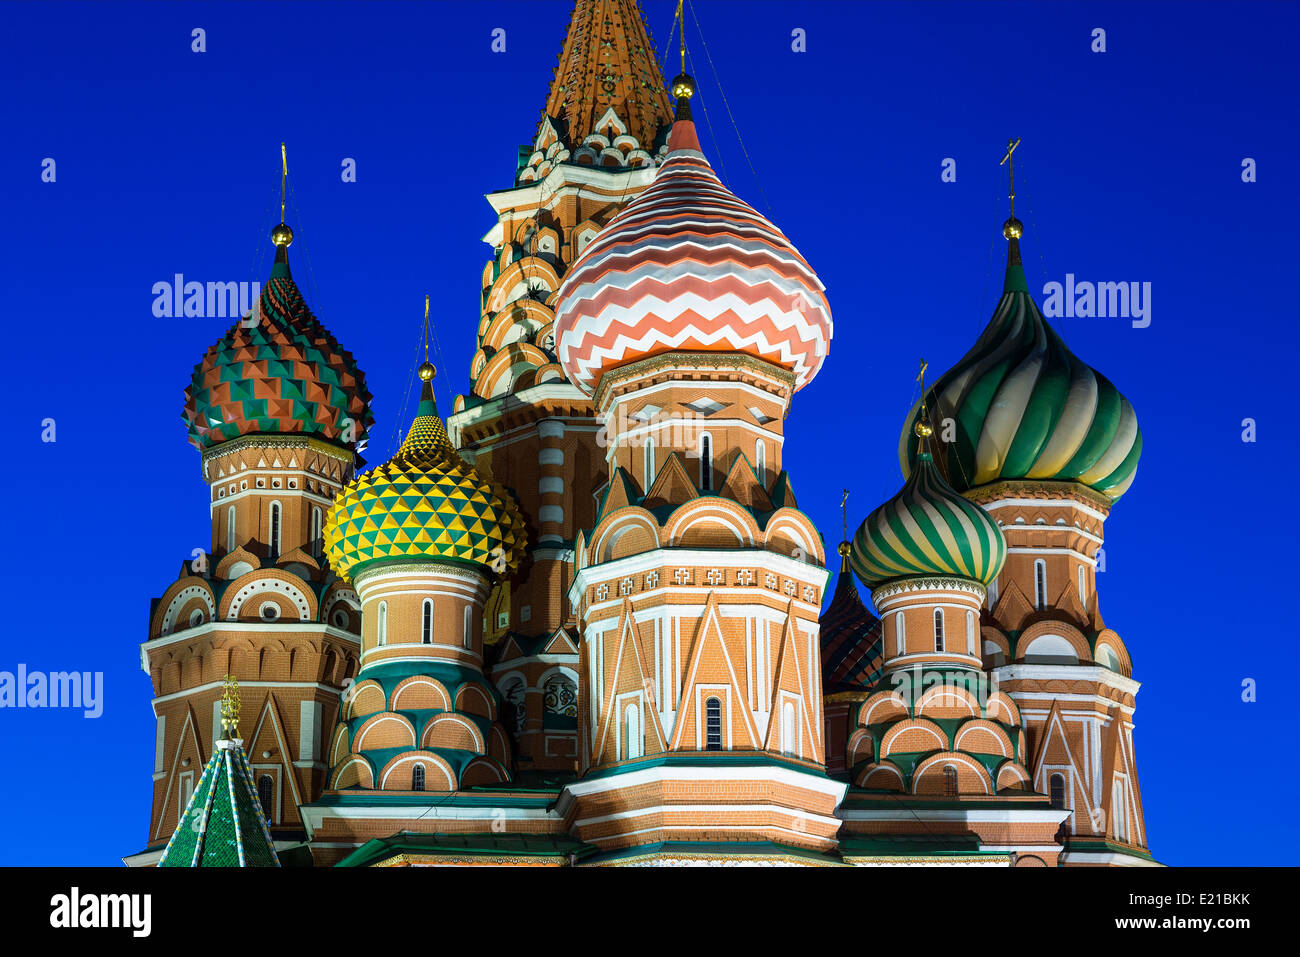 Russia St. Basil's Cathedral in Moscow at Dusk - Stock Image